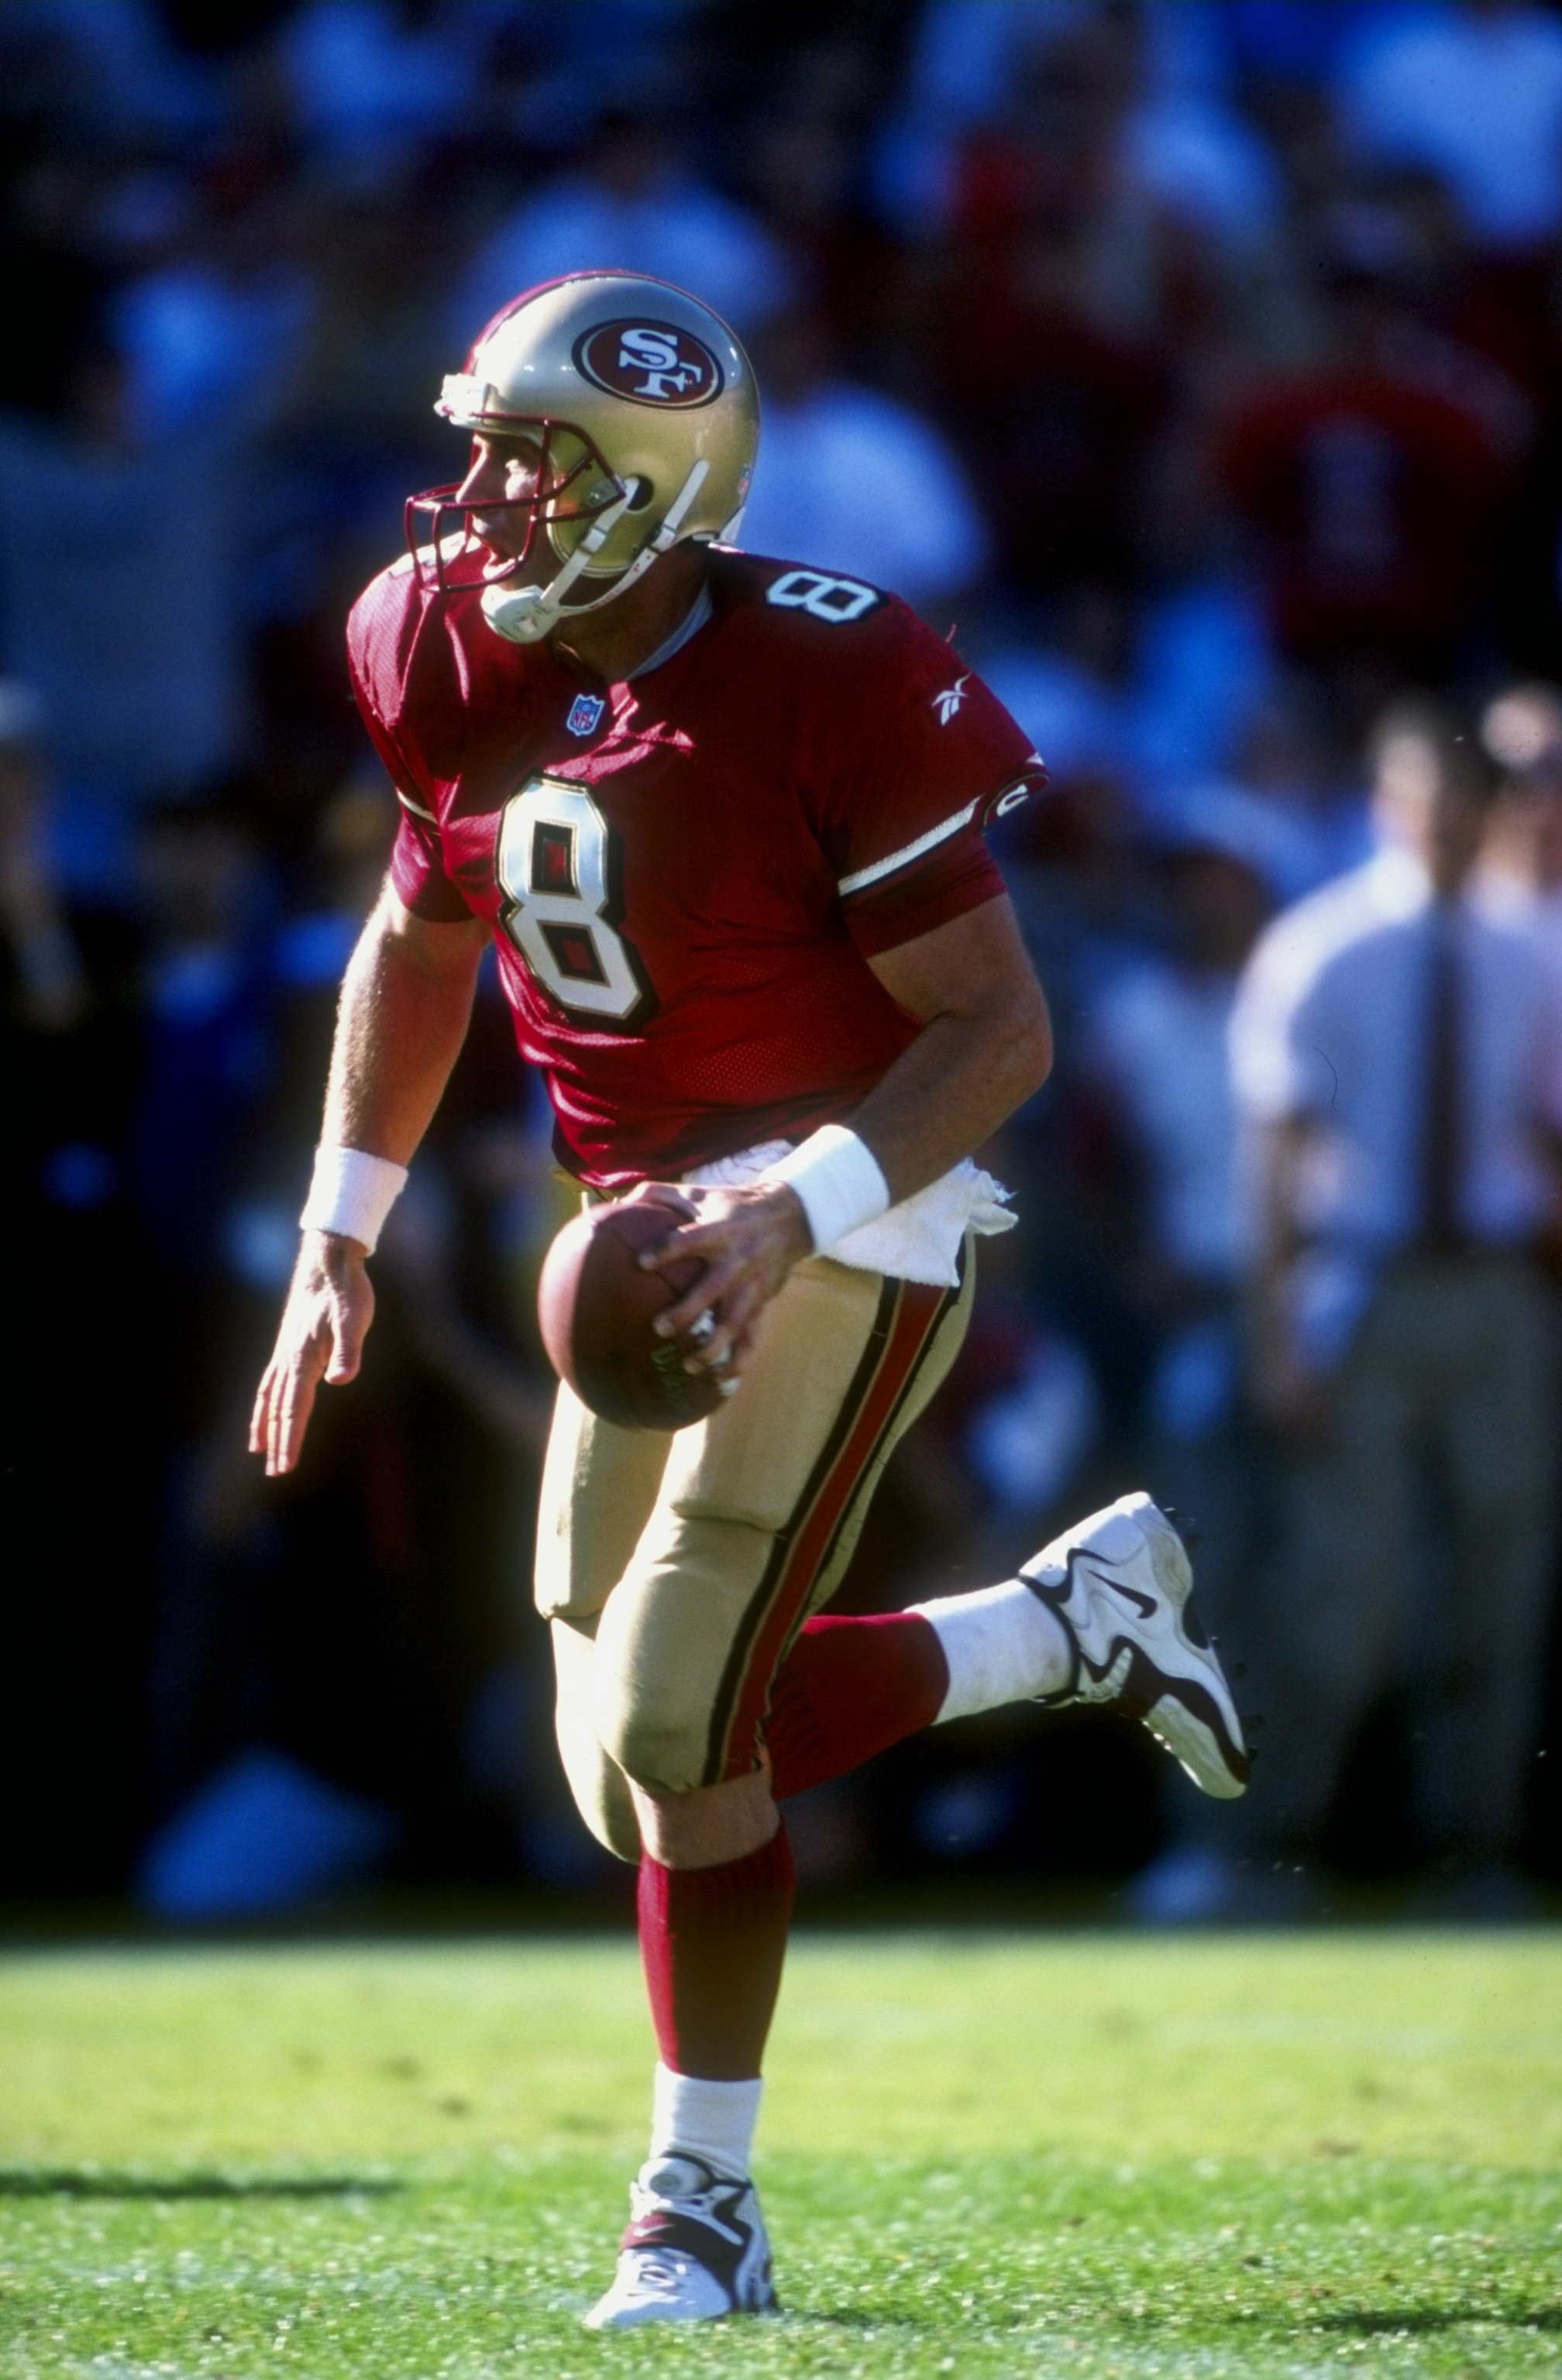 18 Oct 1998: Quarterback Steve Young #8 of the San Francisco 49ers runs as he looks to throw during the game against the Indianapolis Colts at 3Com Park in San Francisco, California. The 49ers defeated the Colts 34-31.